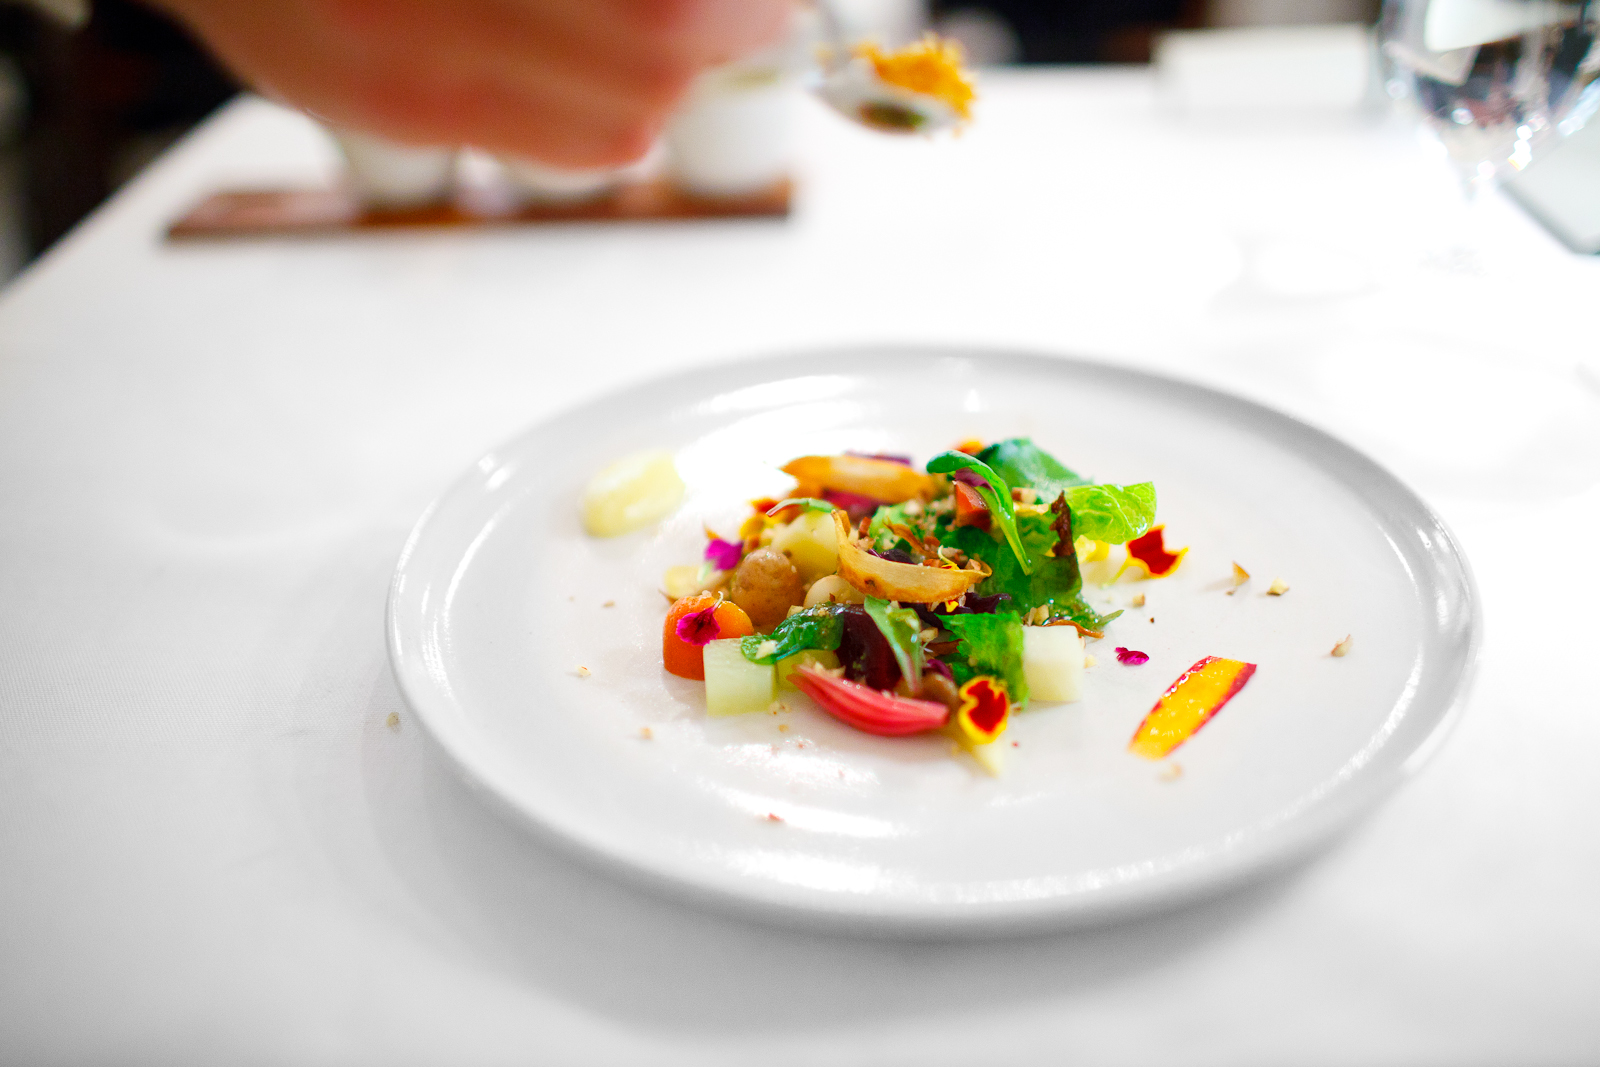 """2nd Course: Vegetables from the garden """"satio tempestas"""" with melted herbs, fresh nuts, and crispy fish scales"""